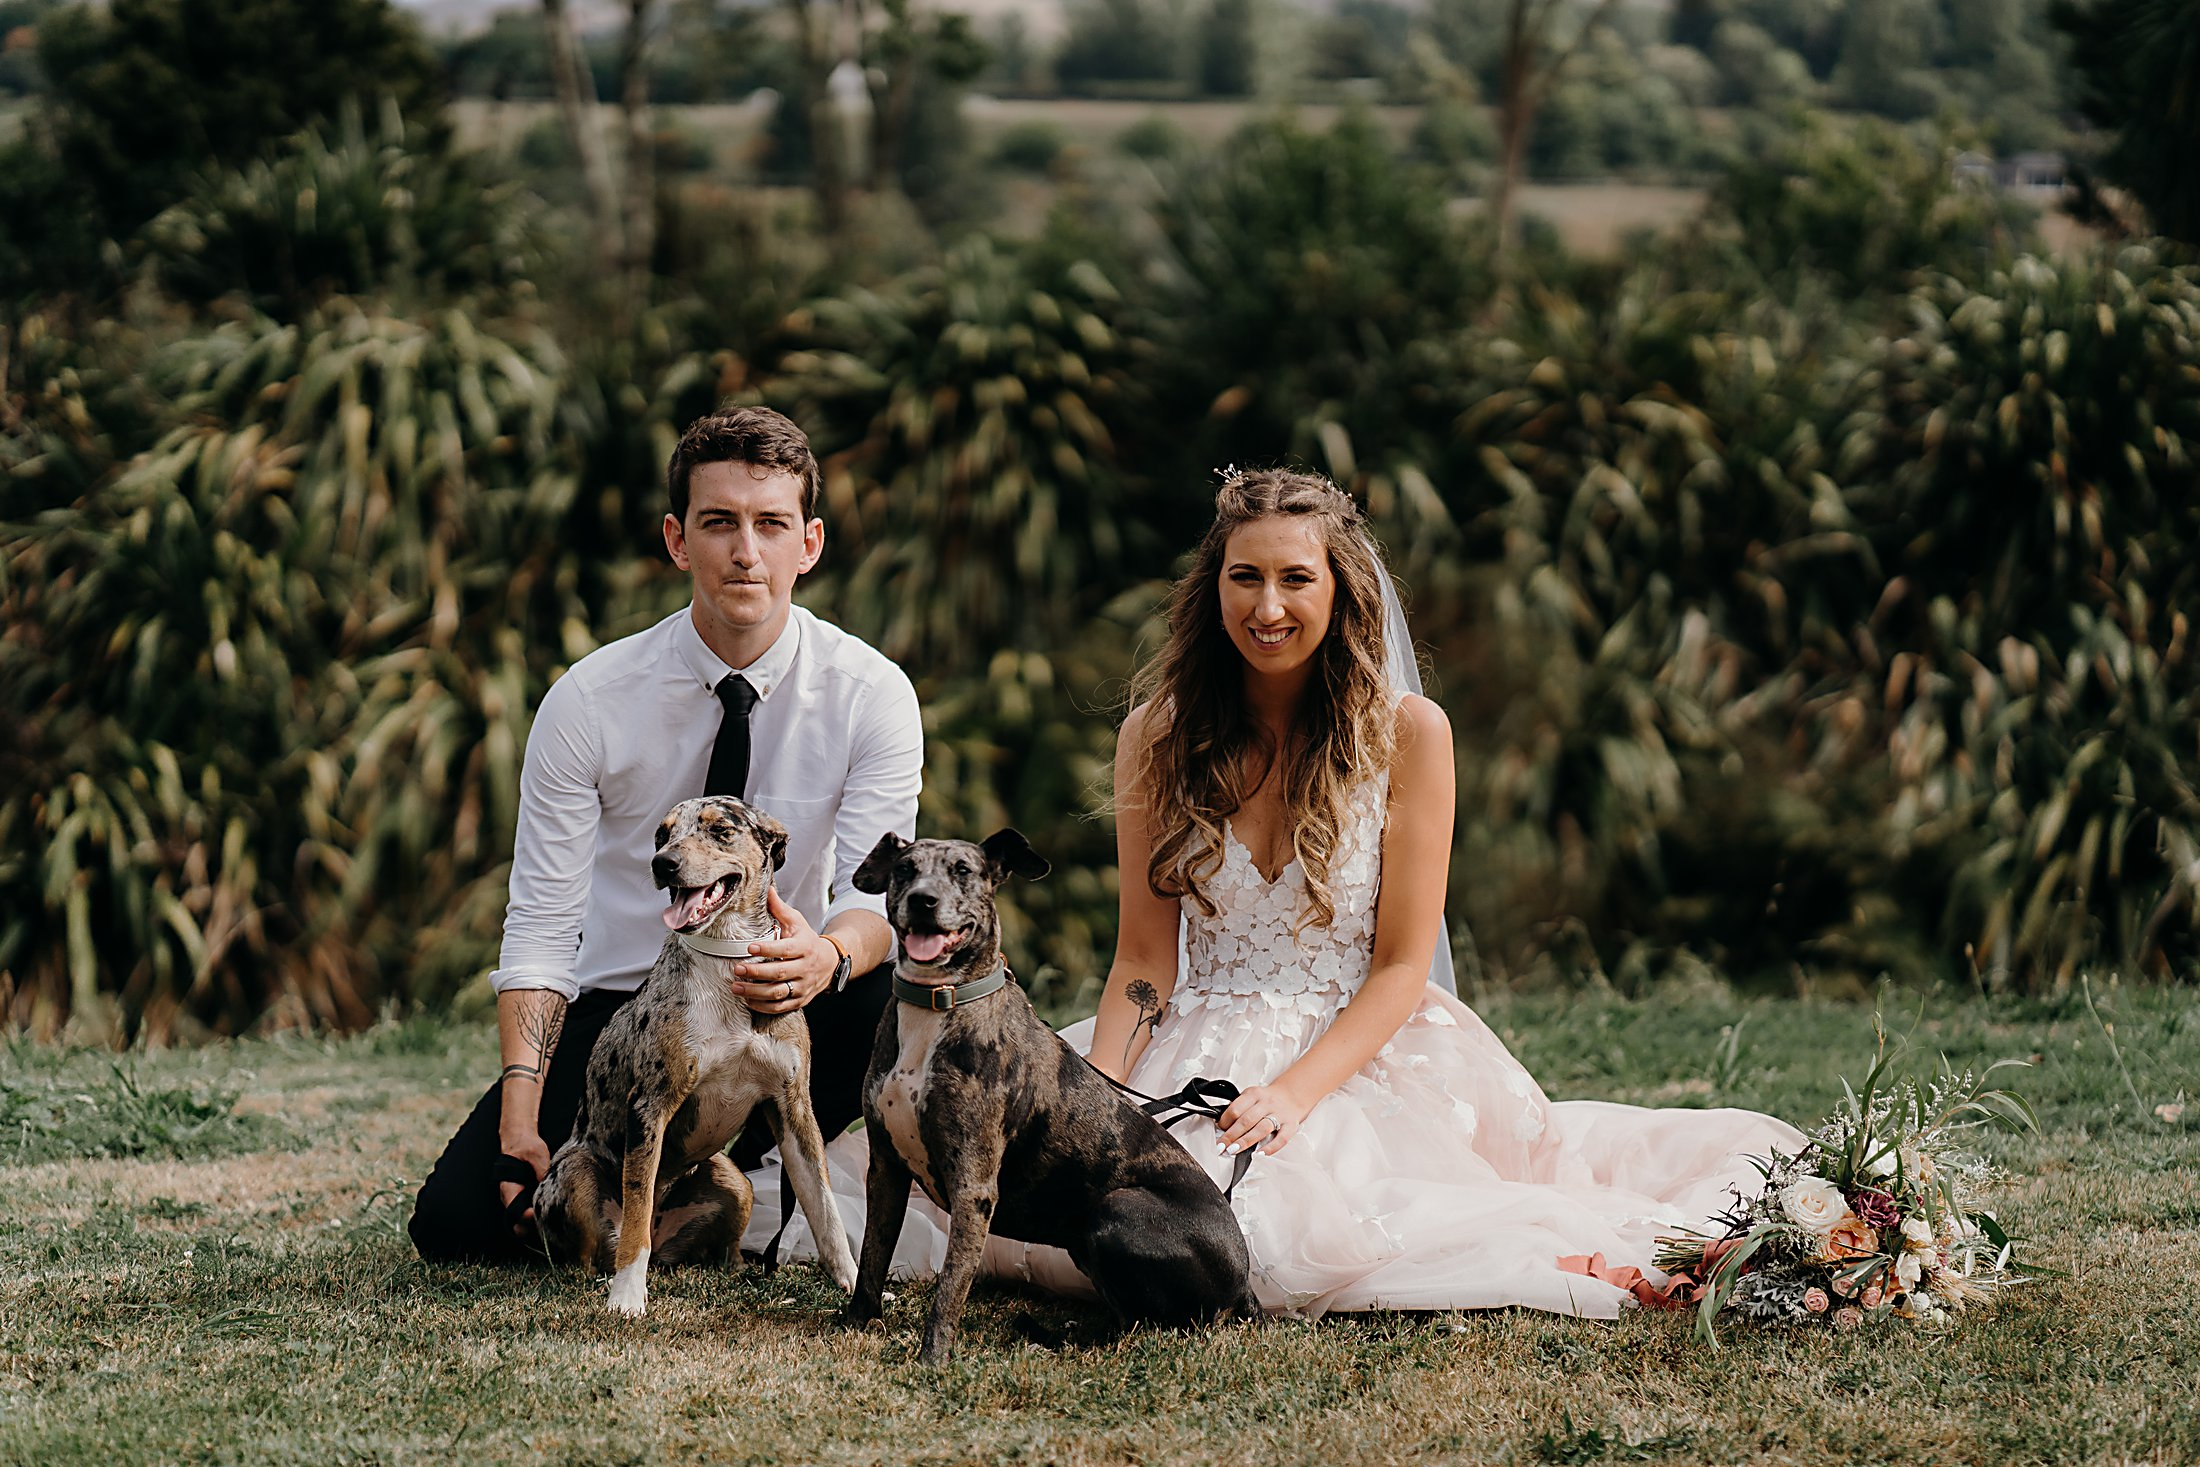 Bride and Groom with their wedding dogs